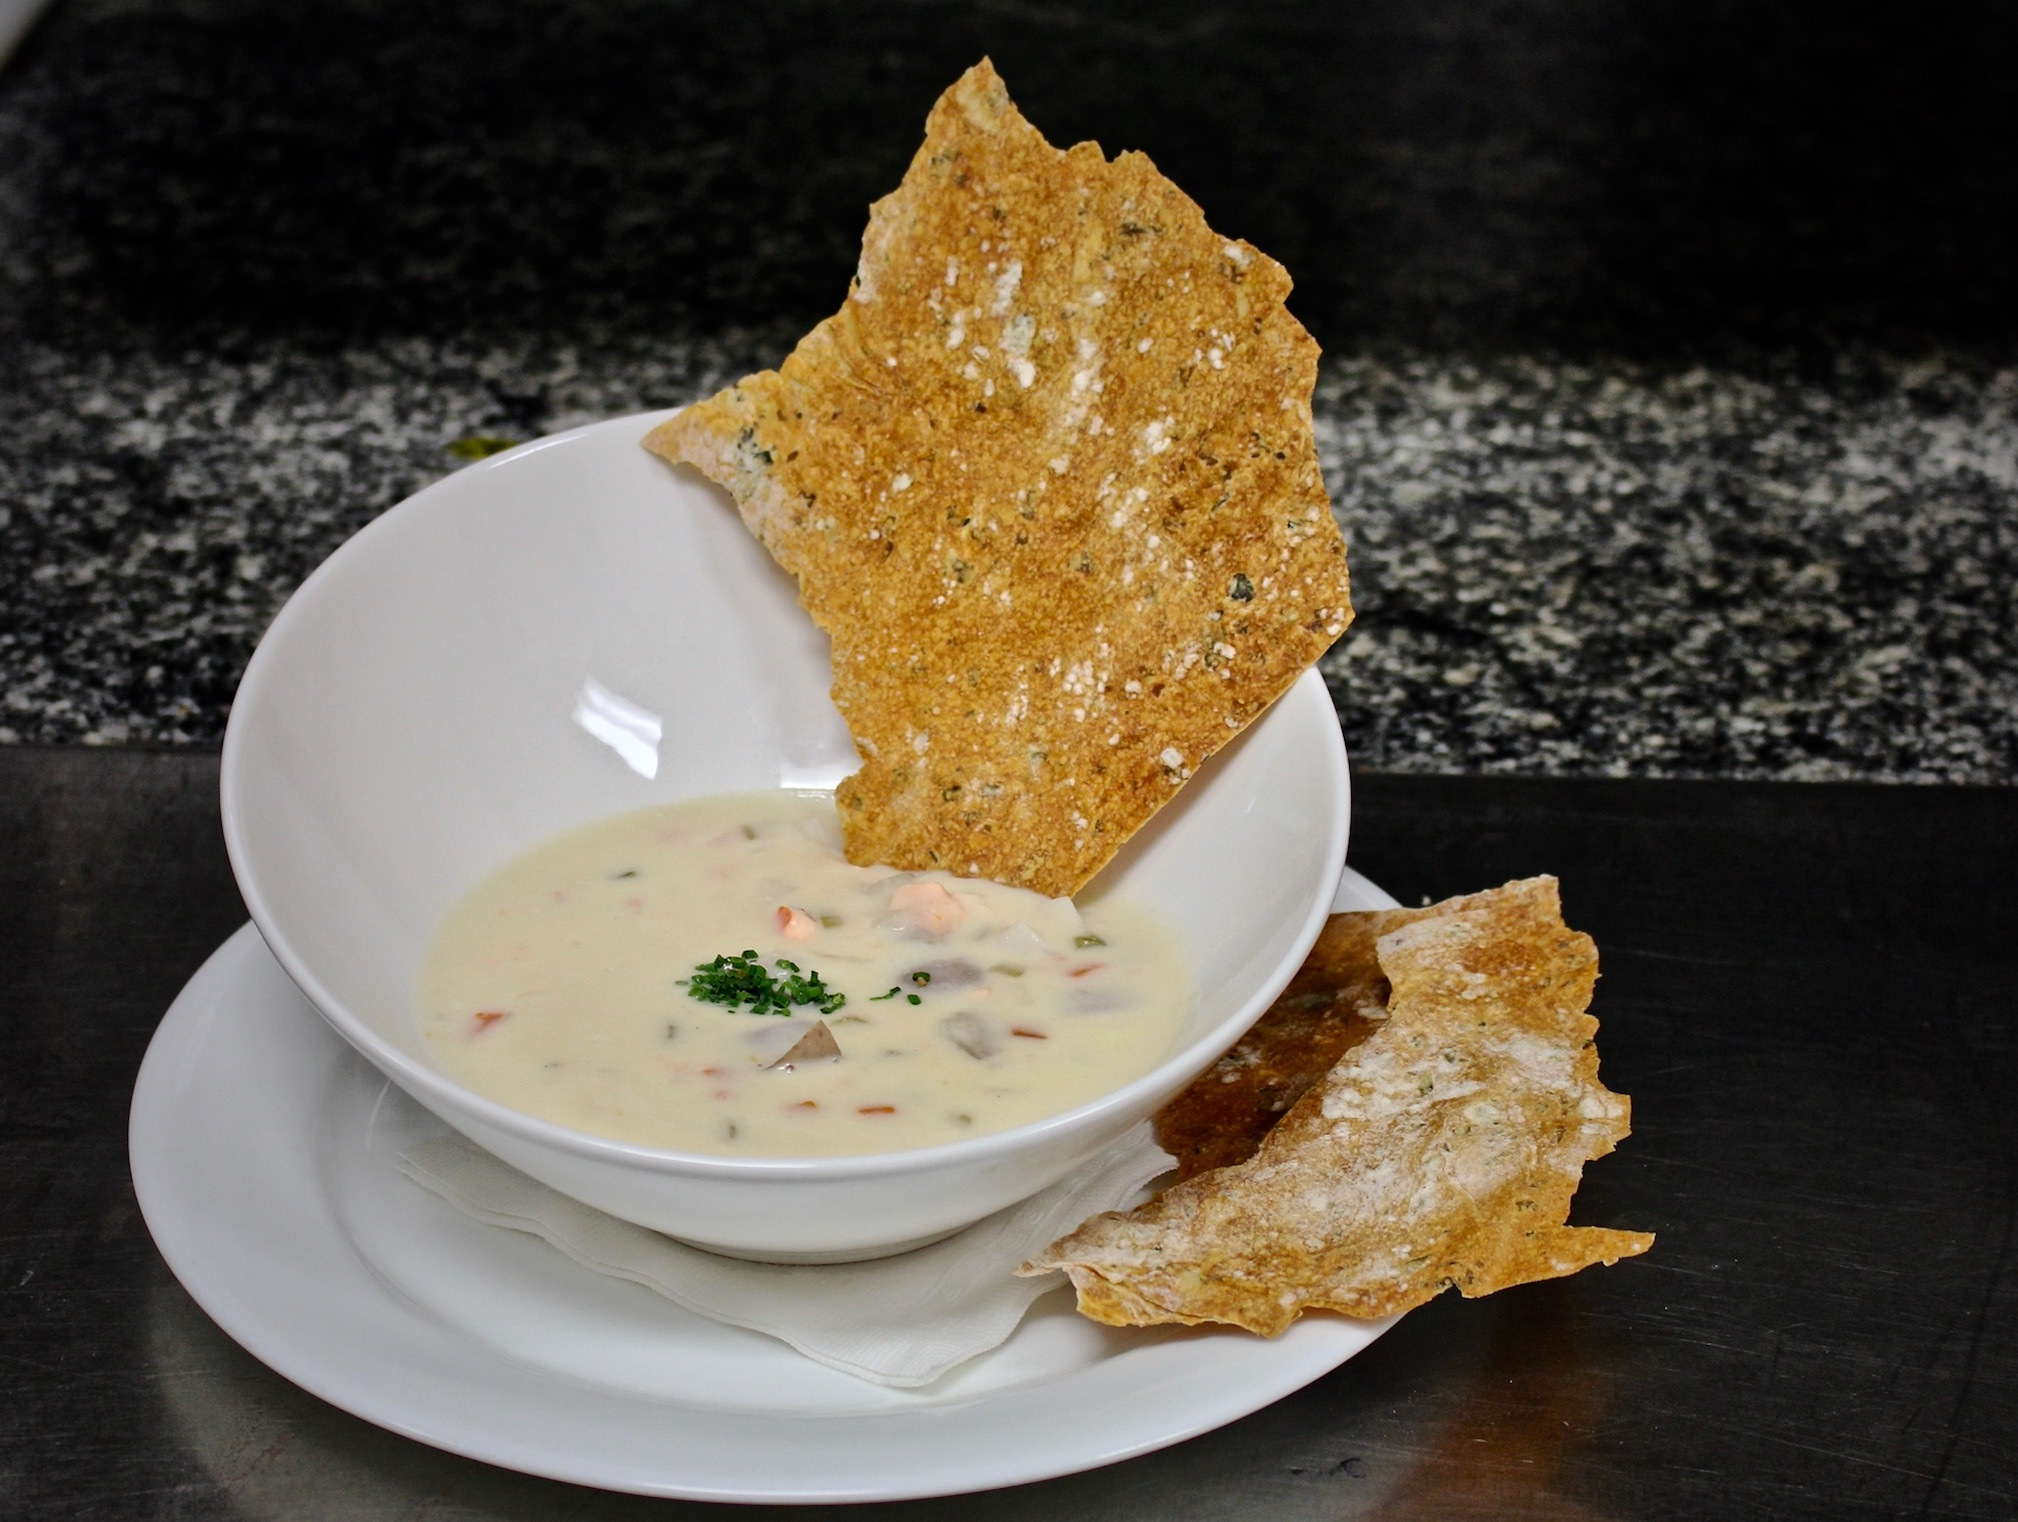 There are many ways to enjoy the Northumberland Shore's signature clam, but this quahog chowder is our favourite.